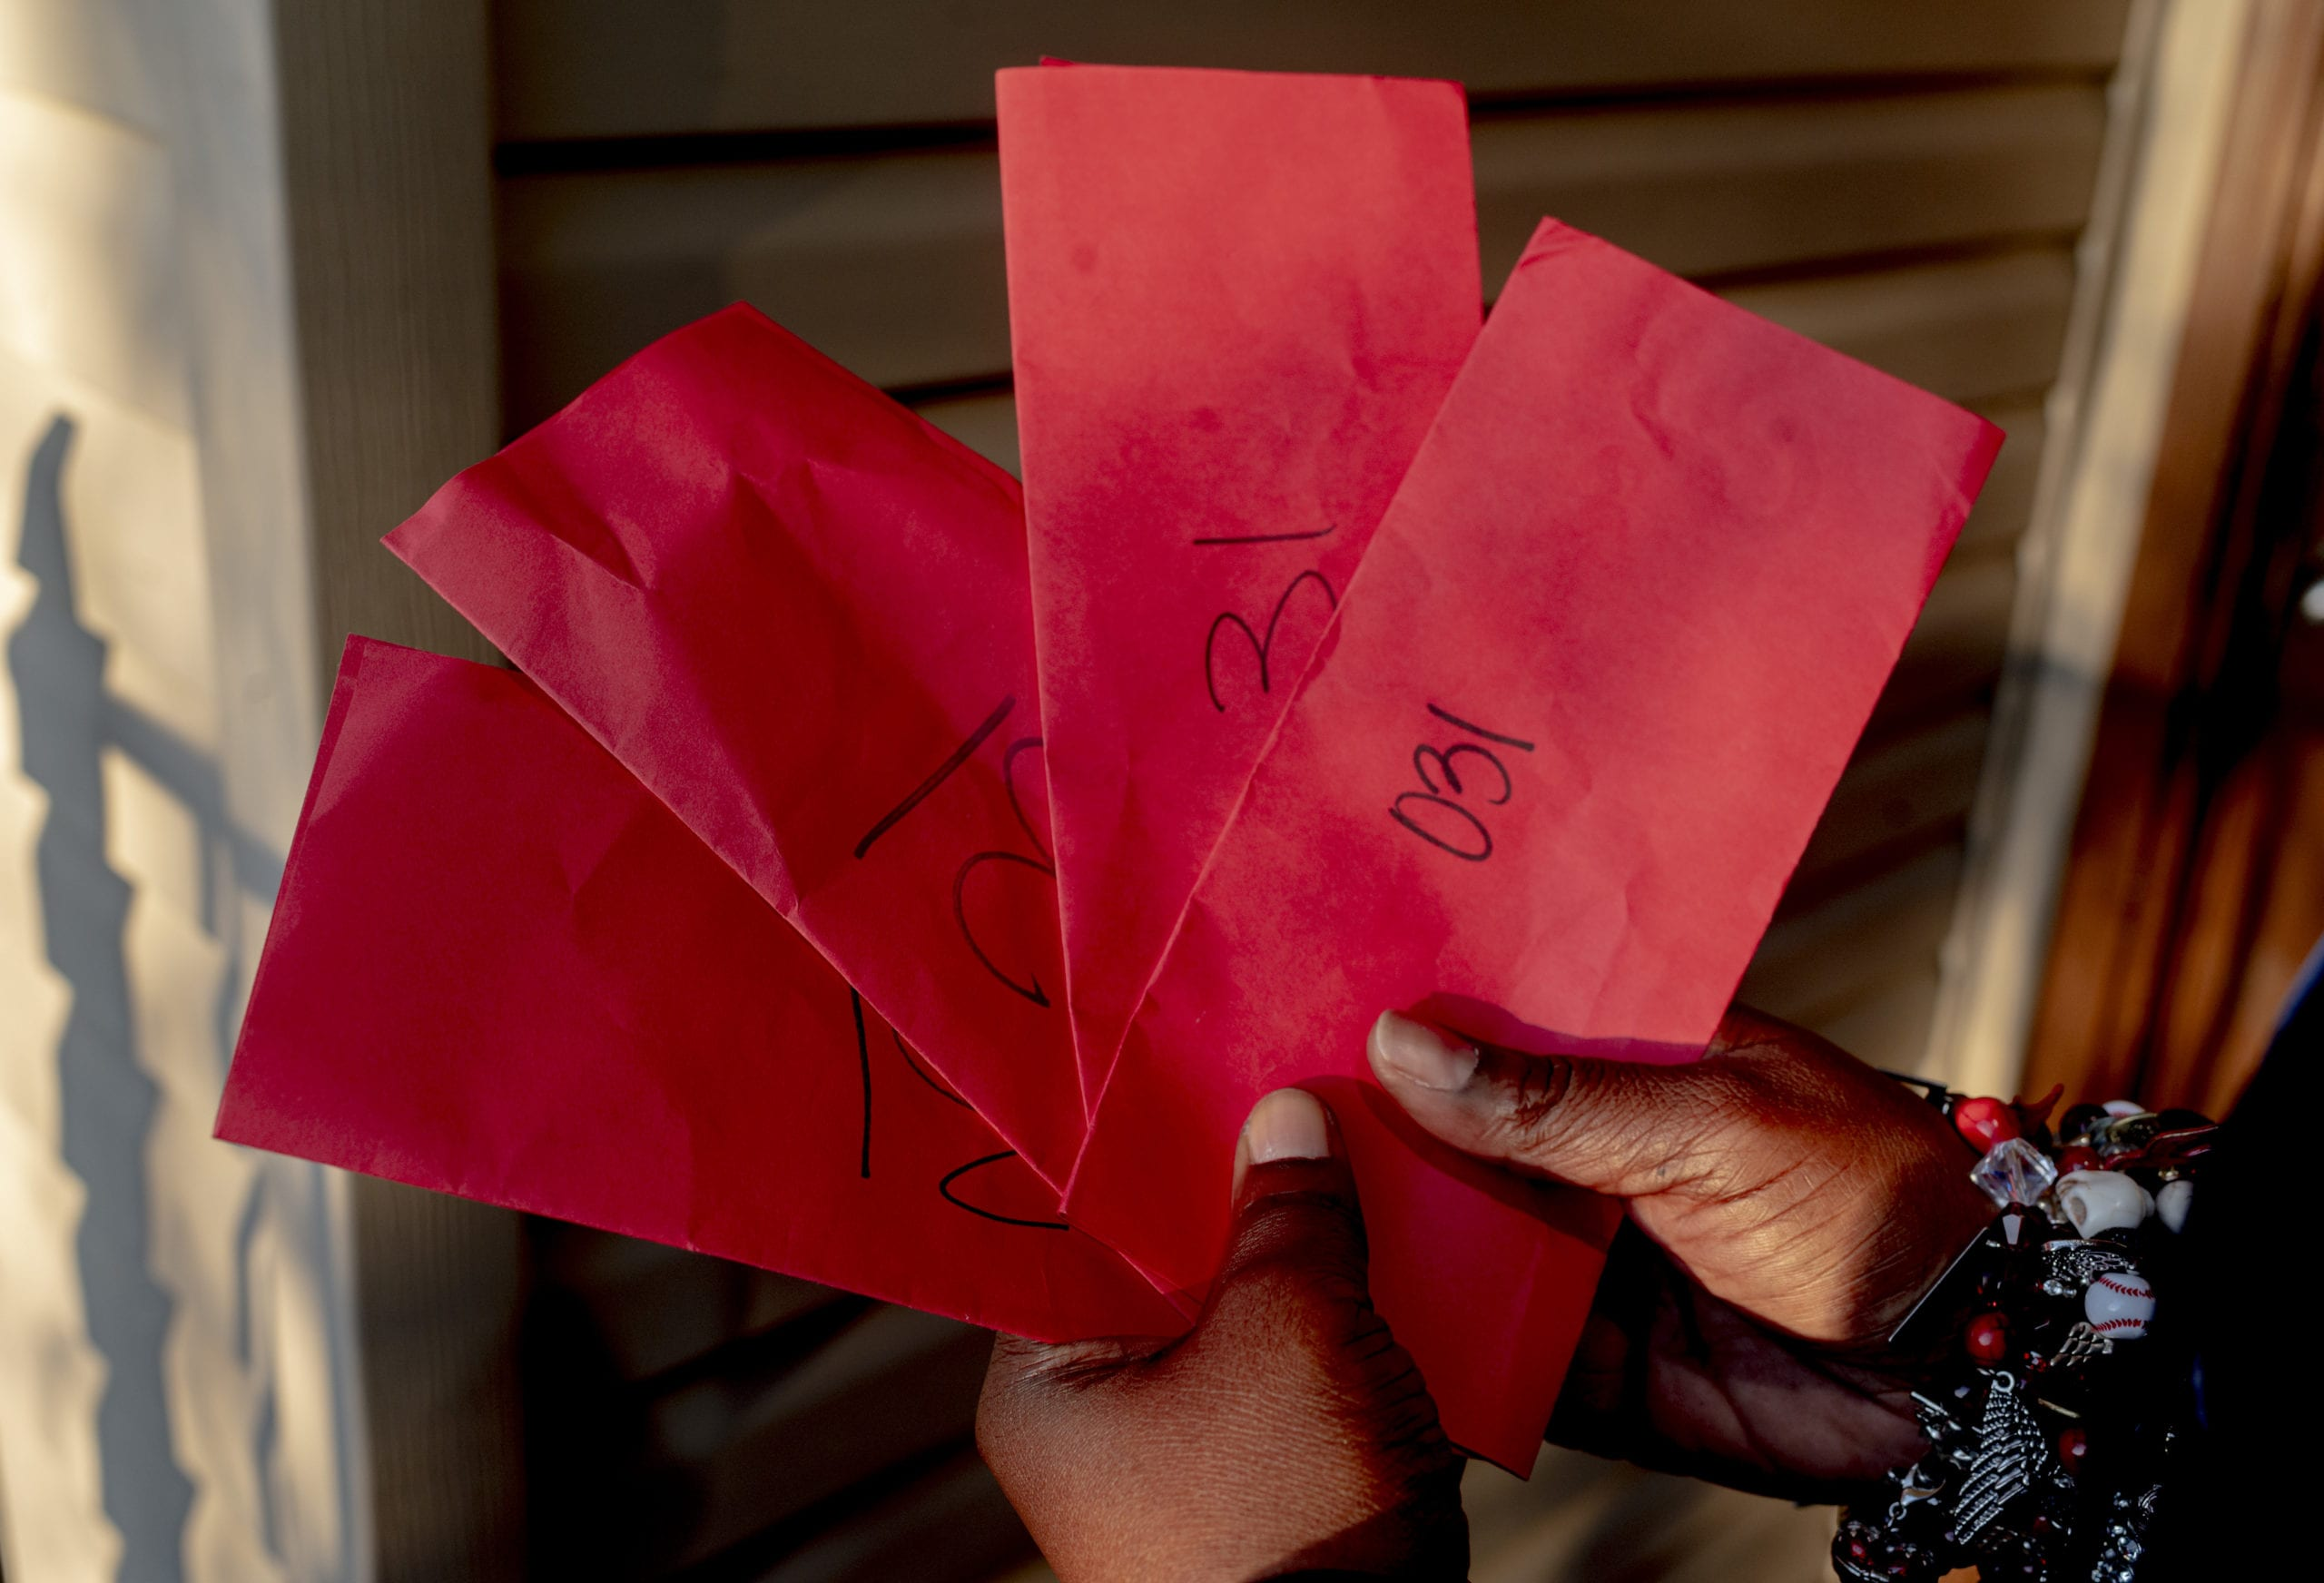 Shanta Scott holds some of the eviction notices, or red slips, she received after losing her job in March 2020.